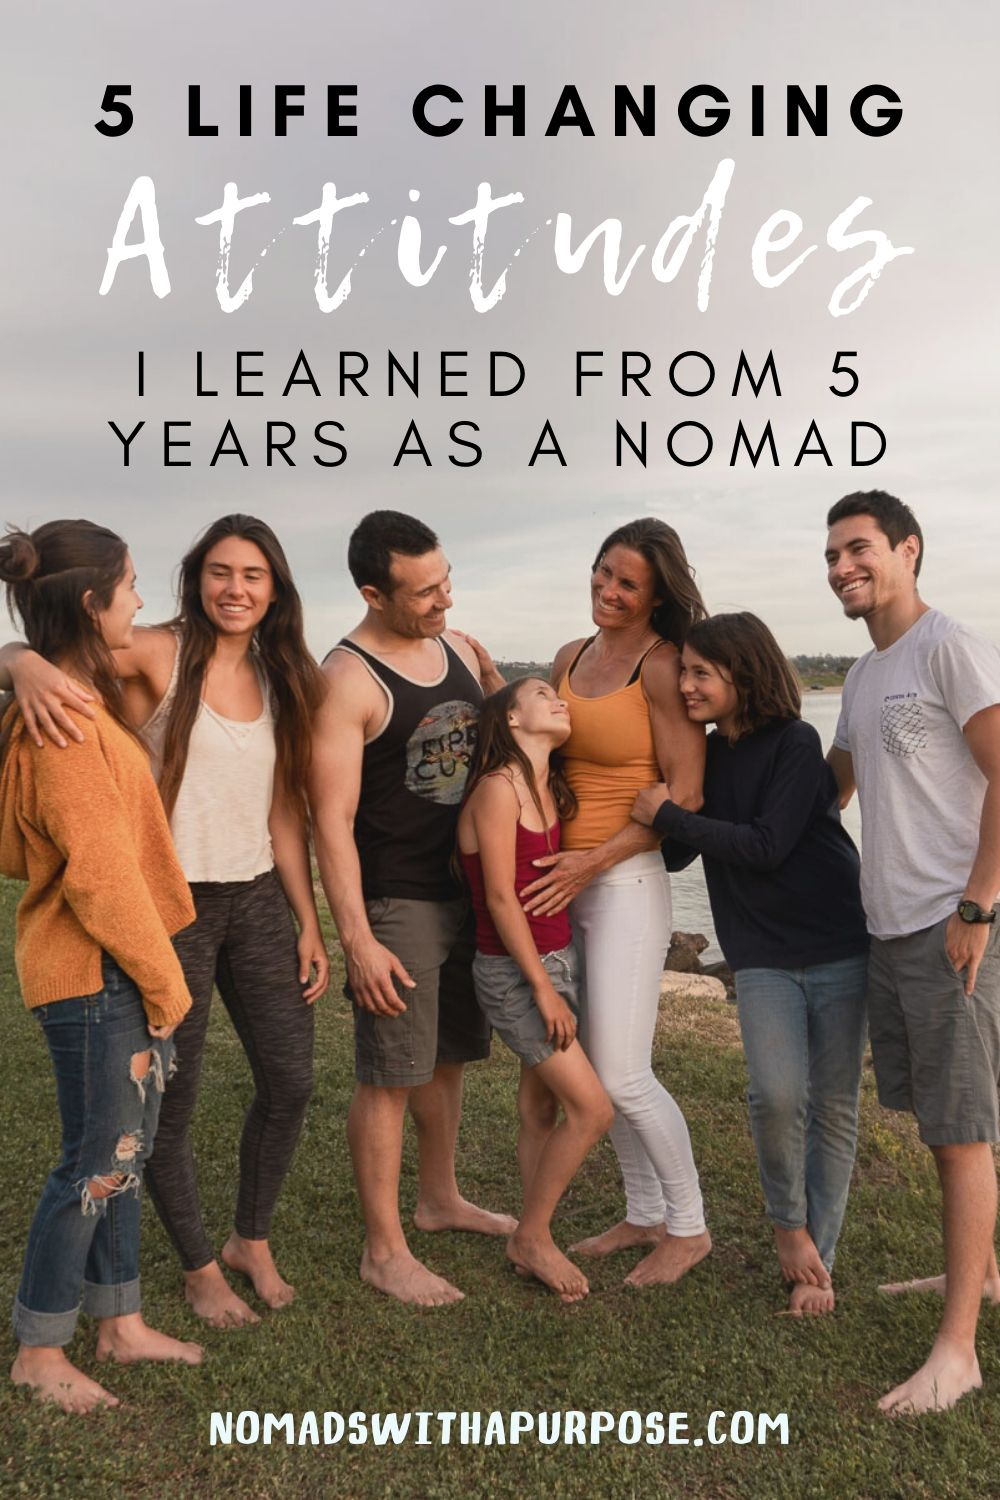 5 years a nomad: Ode to our Nomad Family